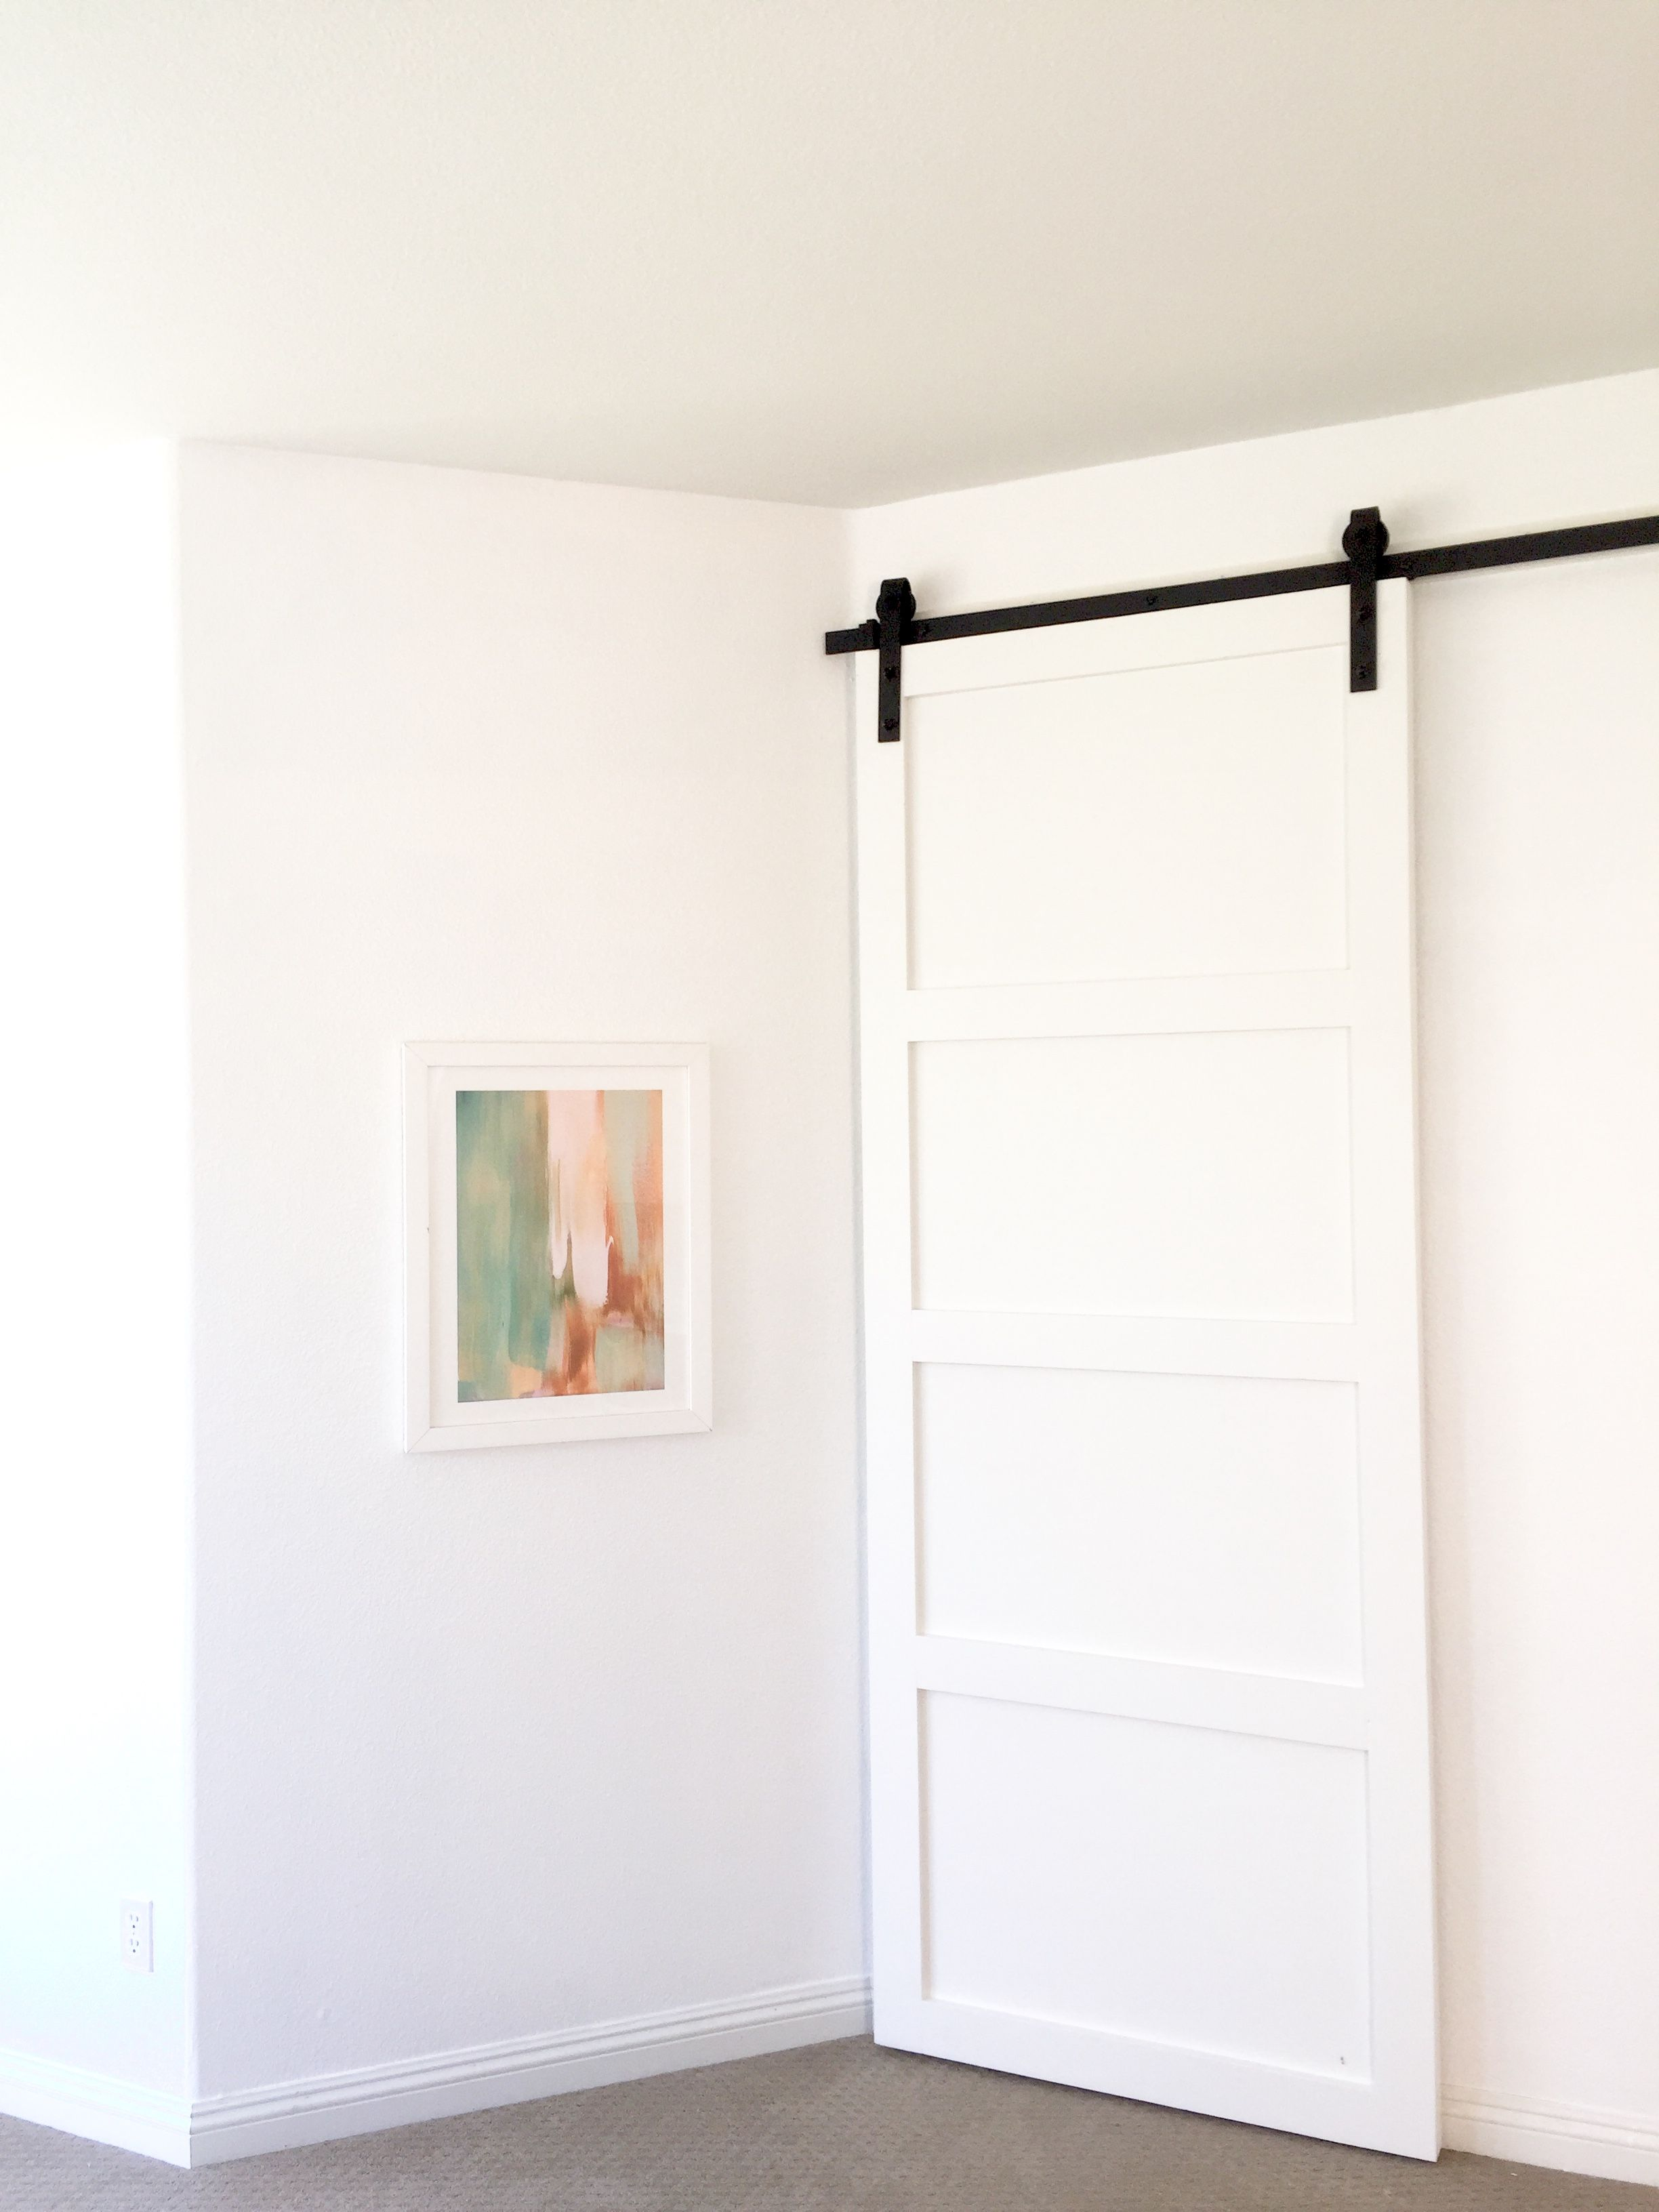 Diy Barn Door Modern Shaker Style White Moderne Barn Door Room Door Design Modern Barn Door Diy Barn Door